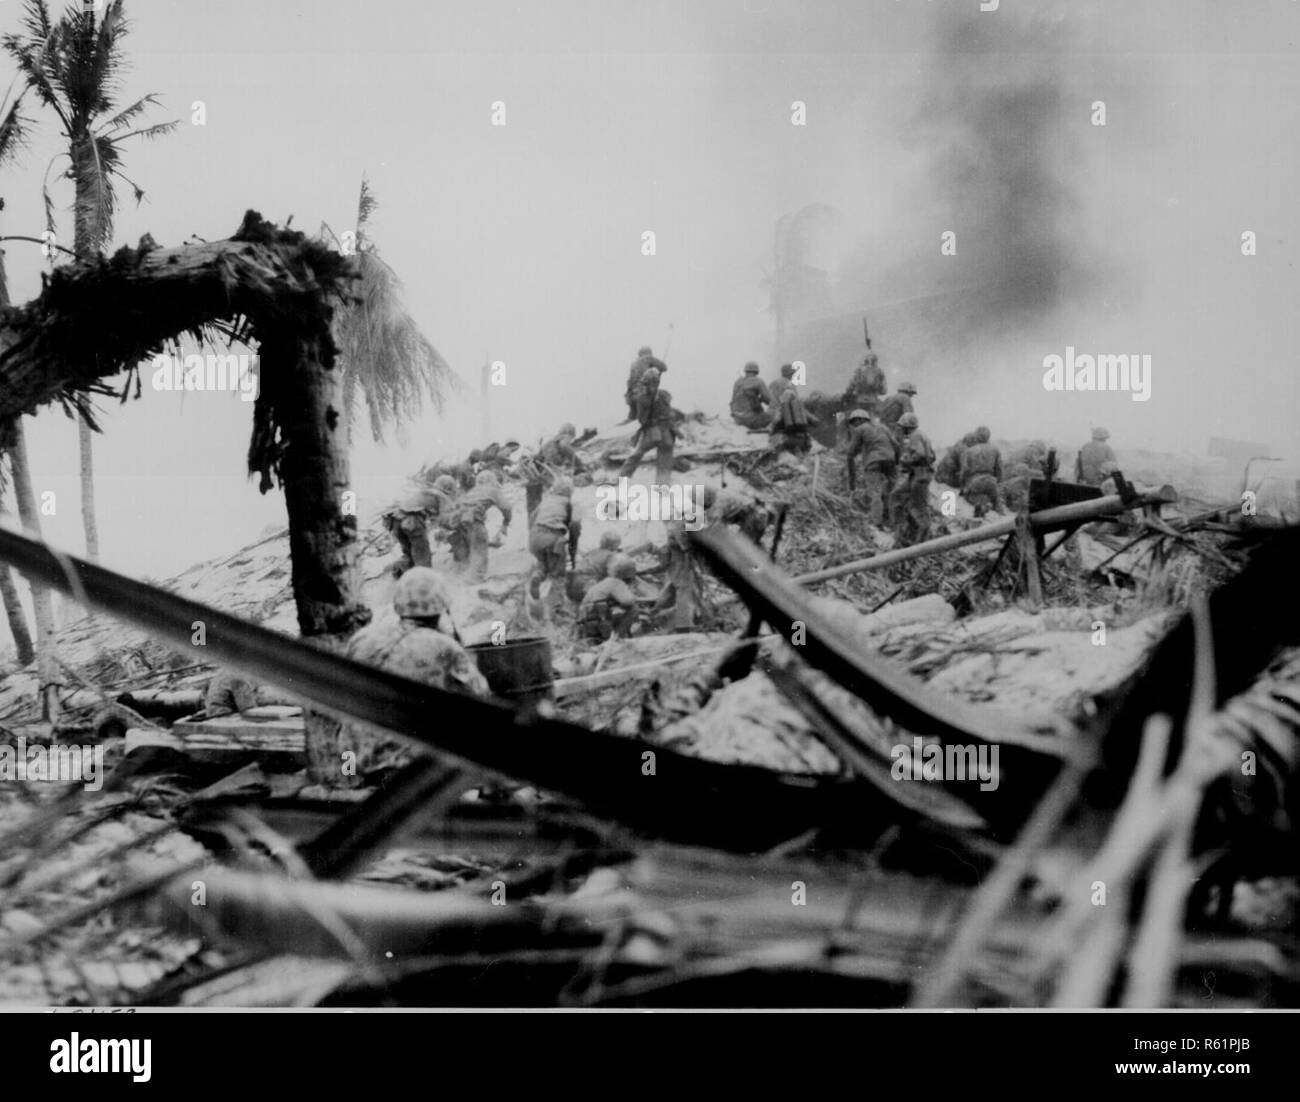 U.S. Marines storm Tarawa in the Gilbert Islands. Nov. 20, 2018 marks the 75th anniversary of the start of the Battle of Tarawa, which was part of Operation Galvanic. It marks one of the bloodiest battles of WWII. The 75th commemoration of the Battle of Tarawa is an opportunity to honor the courage, service and sacrifice of the U.S. military personnel present during the attacks. - Stock Image